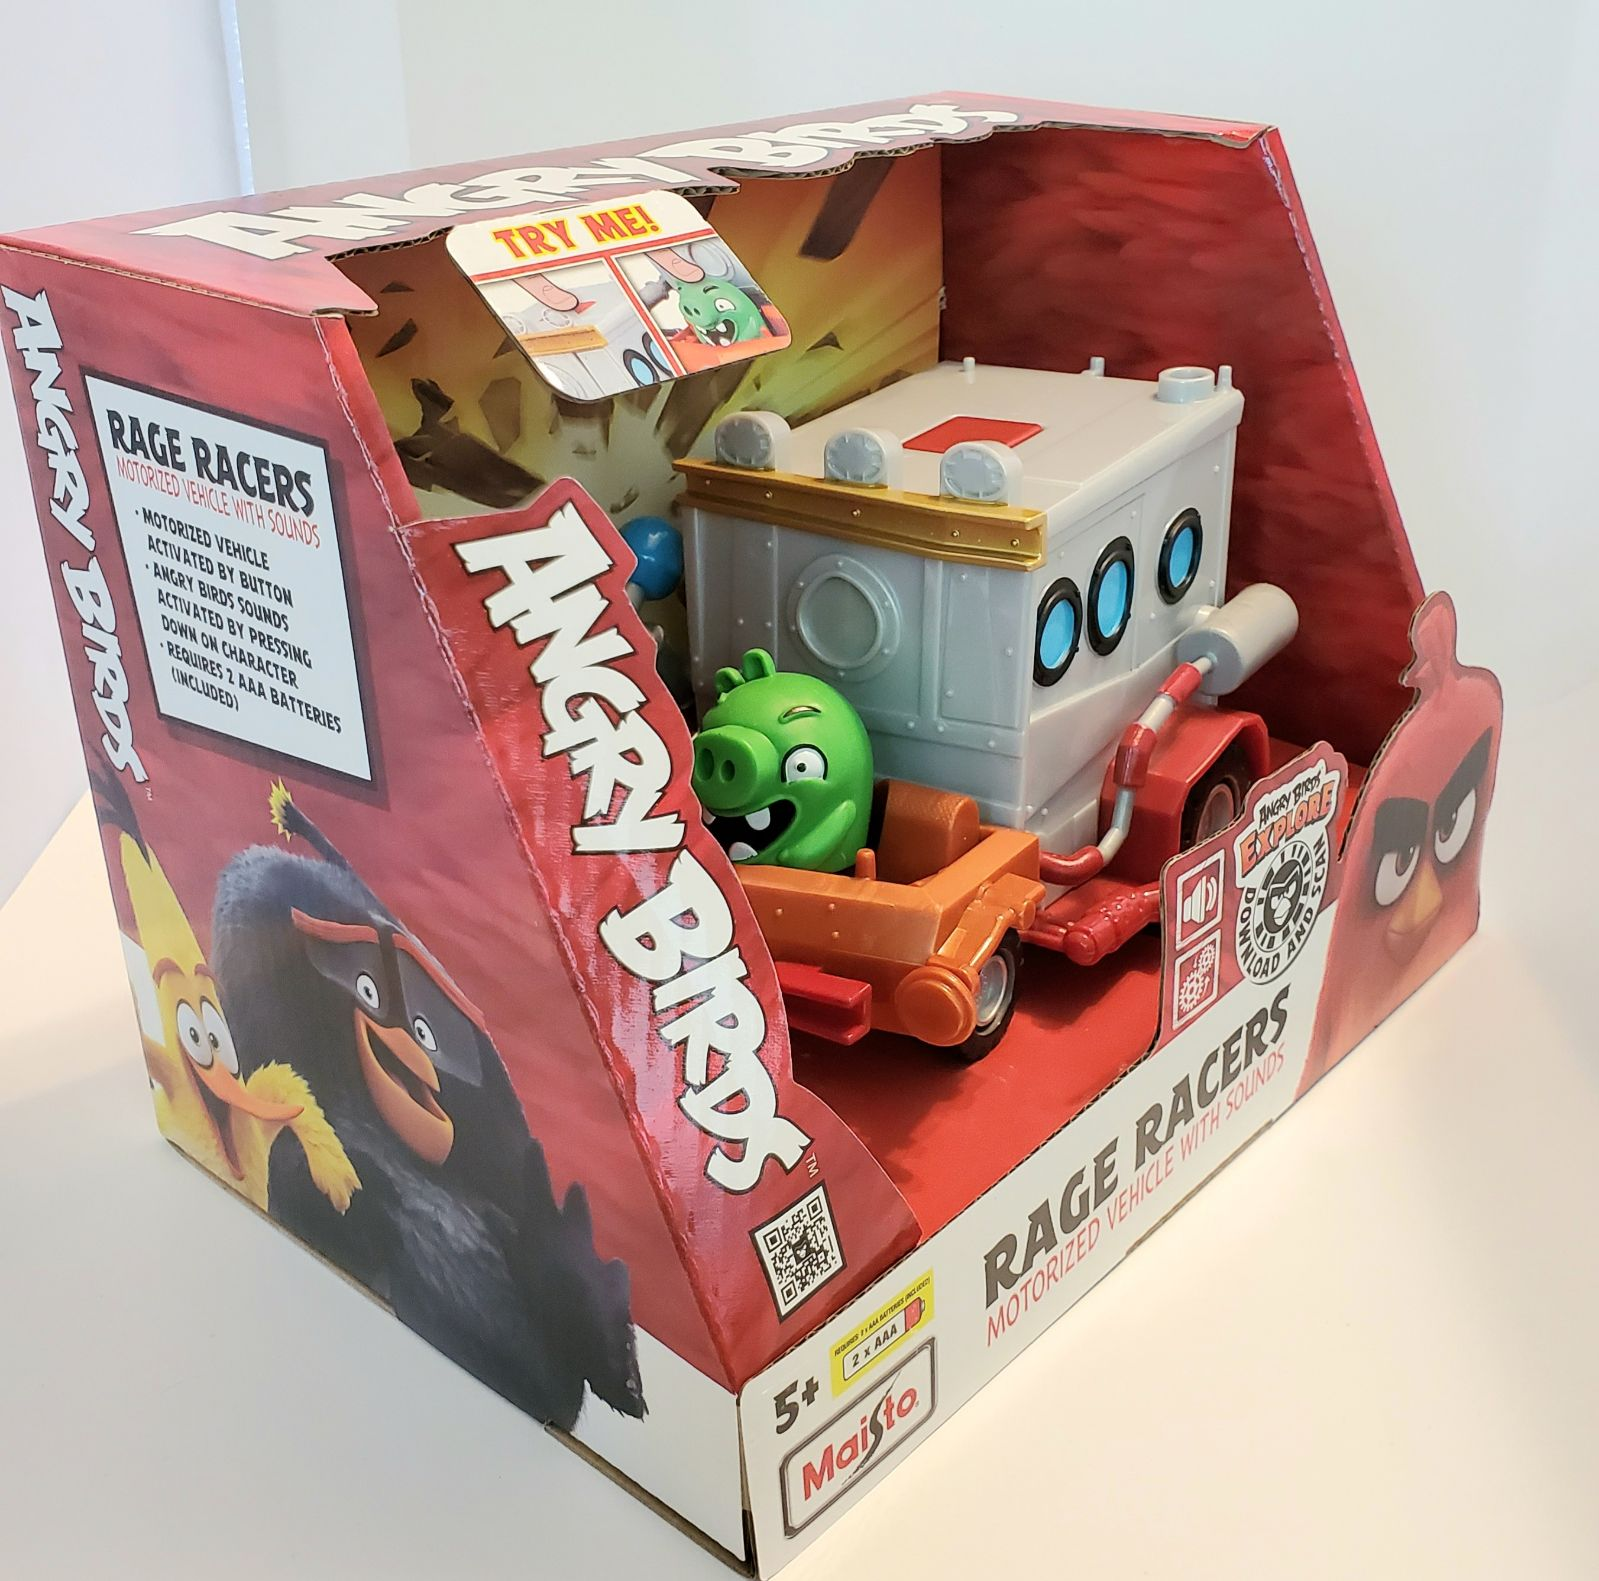 NEW Angry Birds Rage Racers Car Motorize